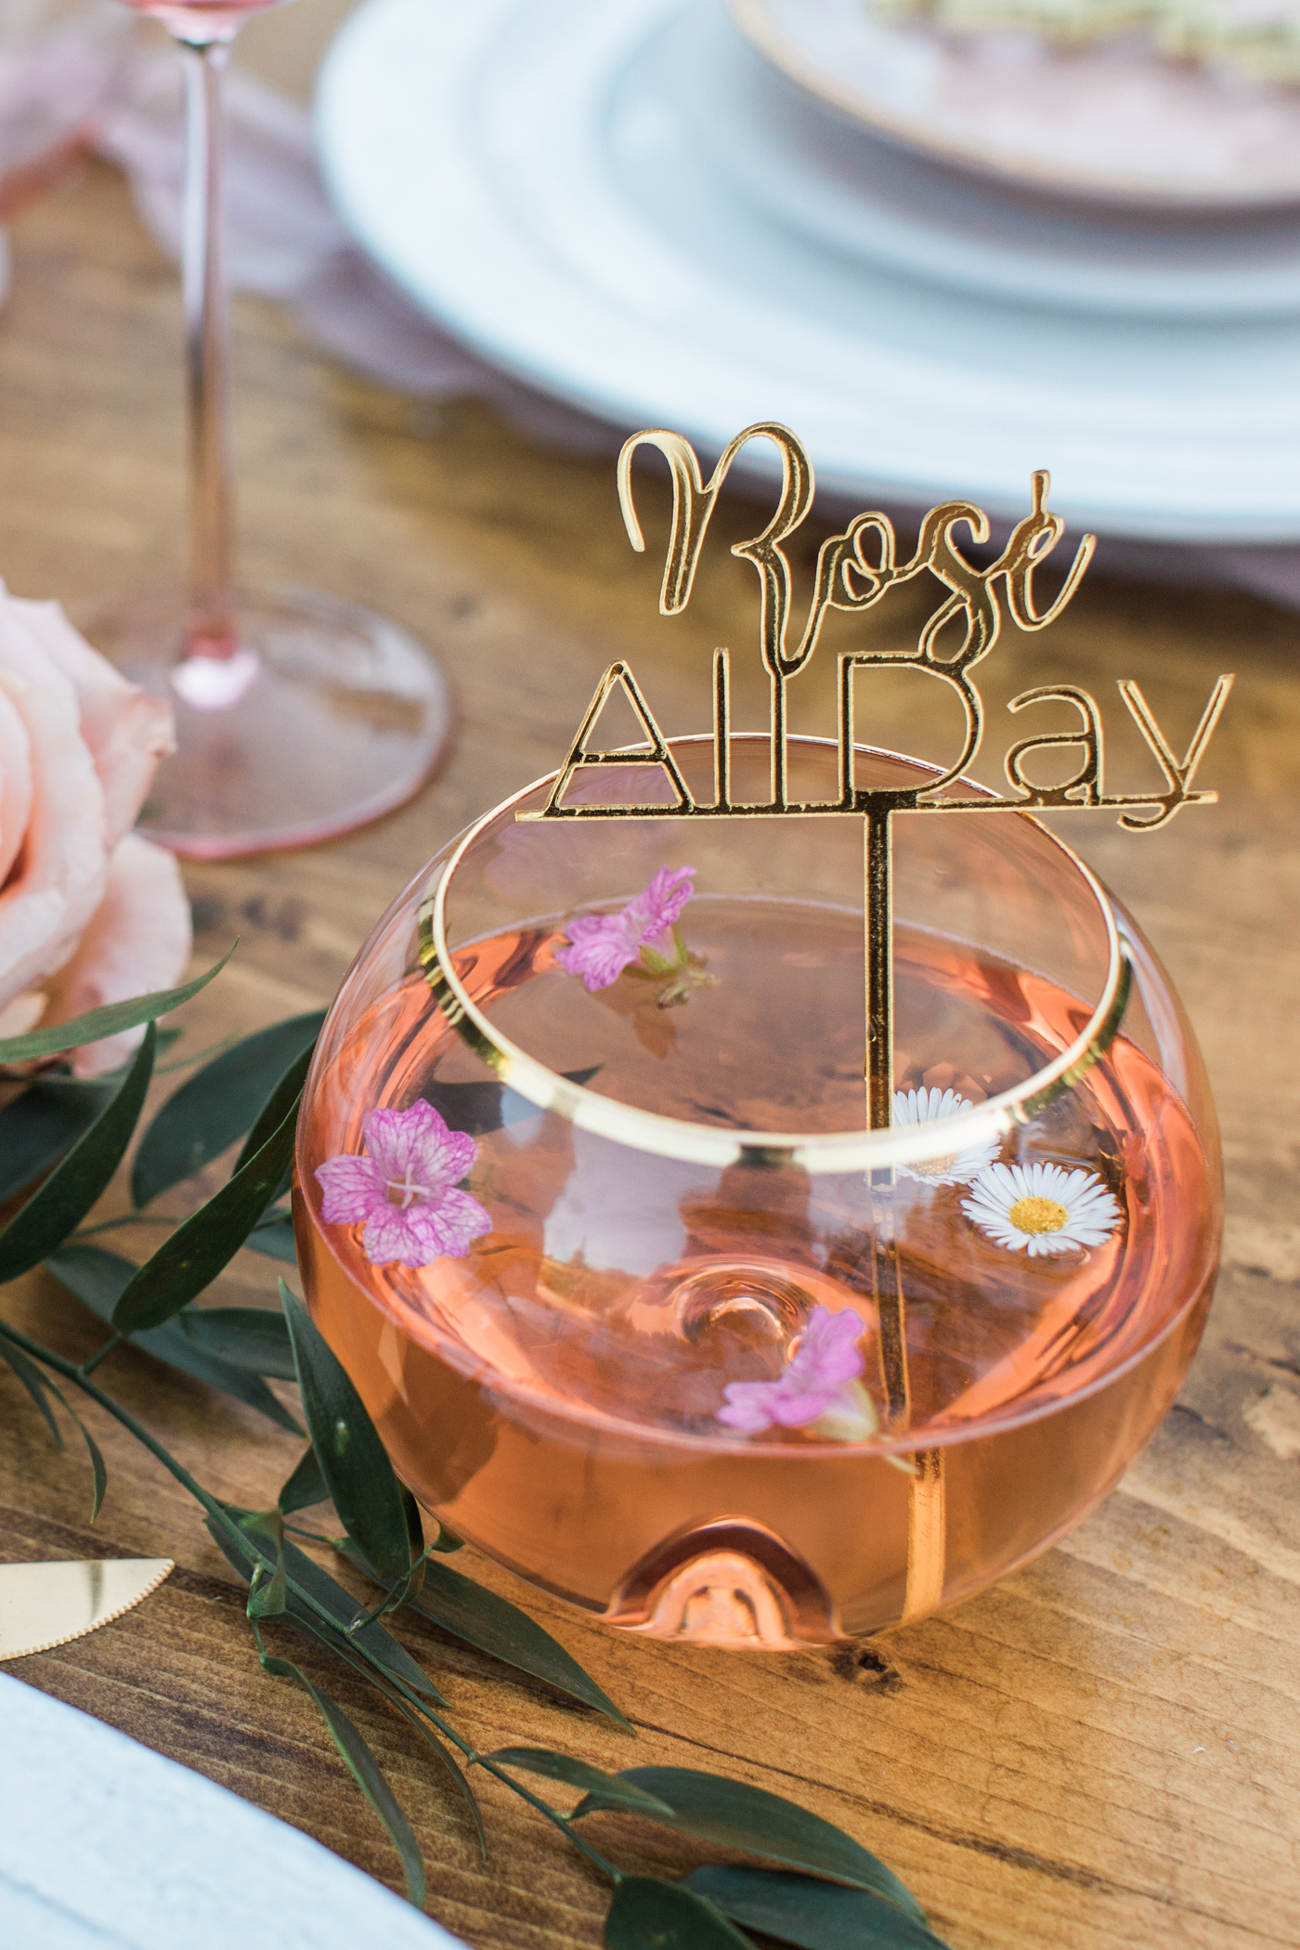 rose all day cocktail servers in gold rimmed glasses